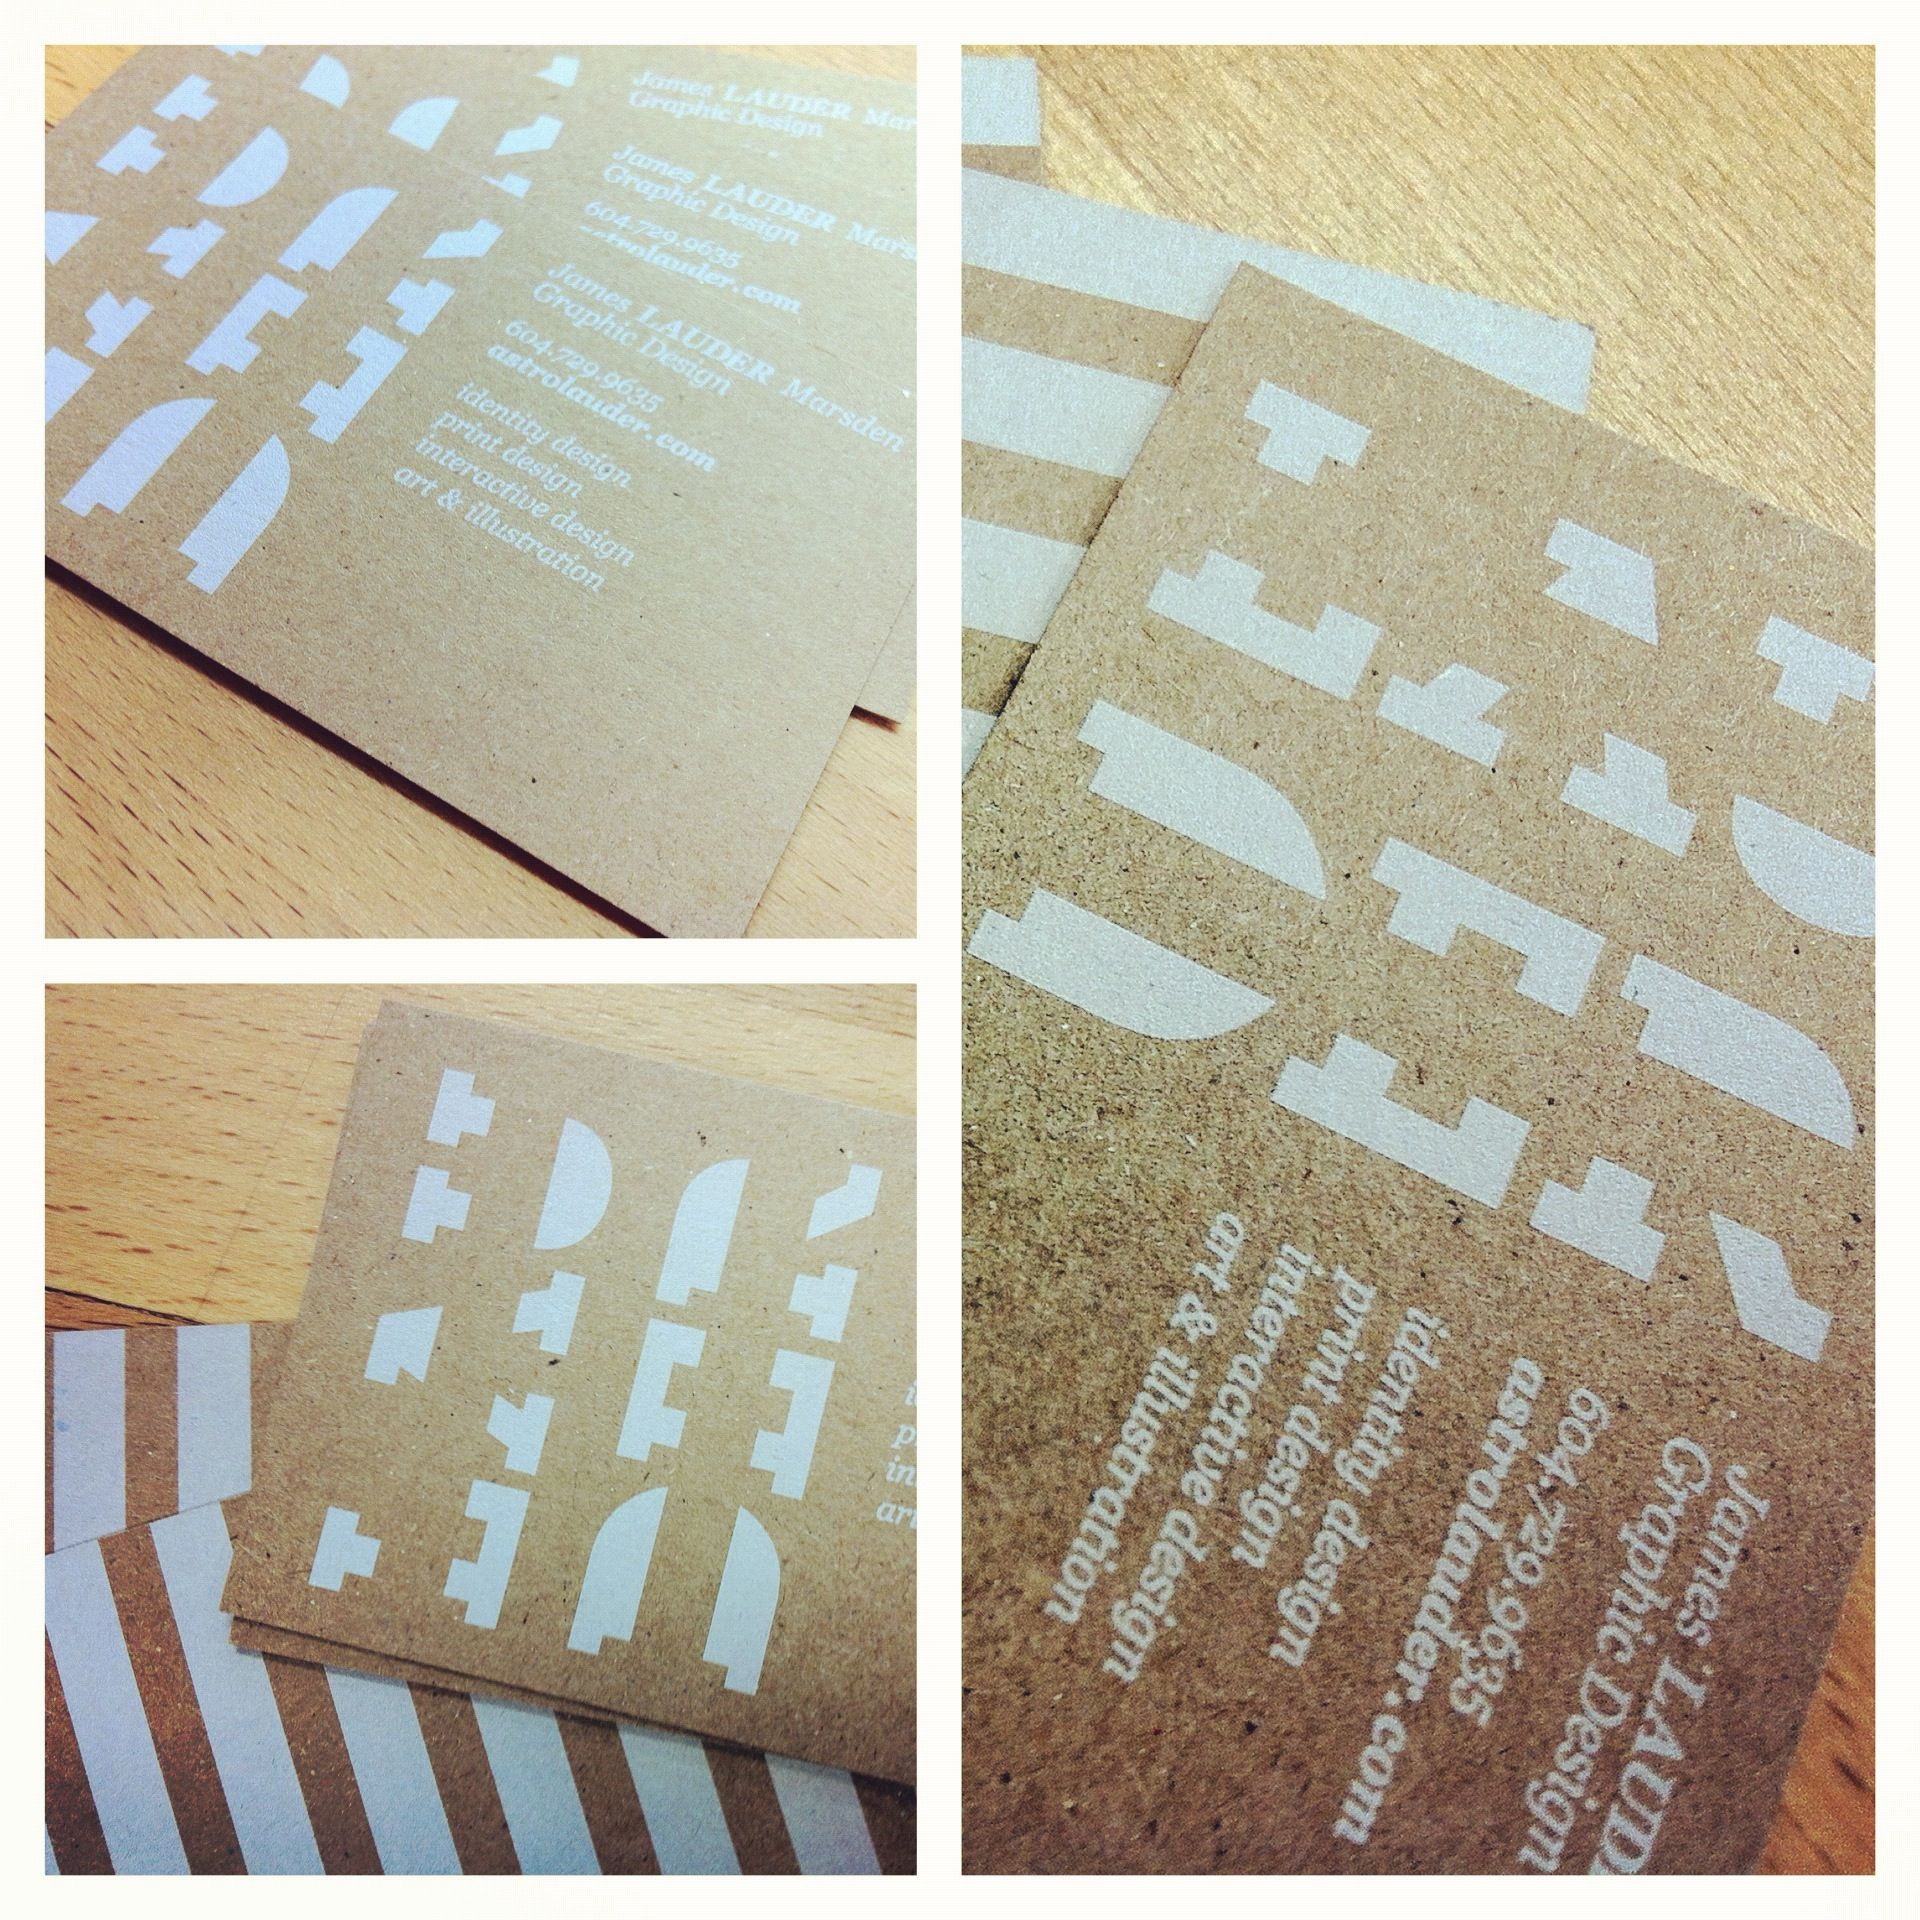 24pt natural kraft business cards with spot white ink by